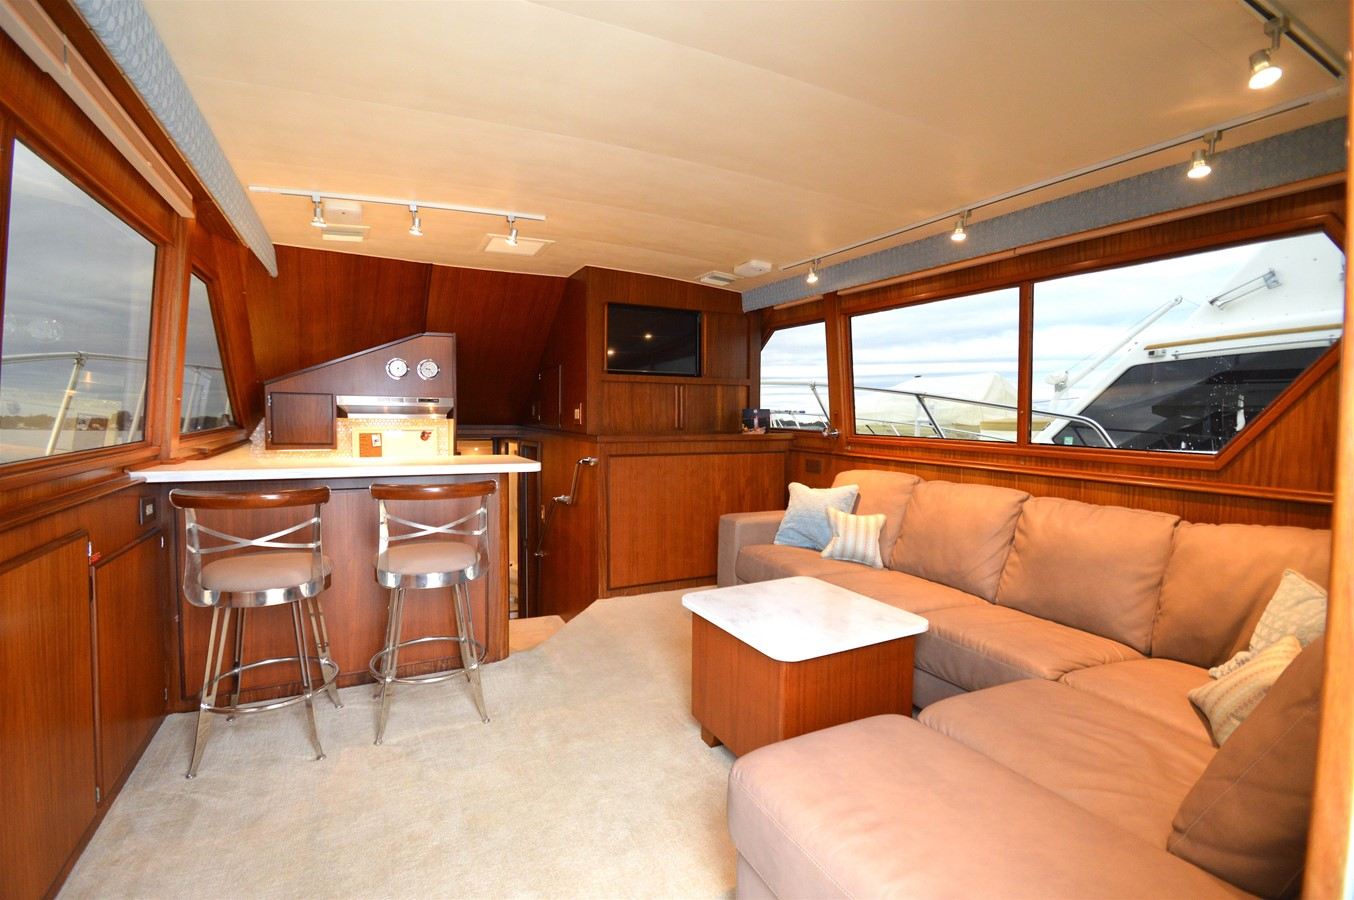 13 - 48 HATTERAS For Sale